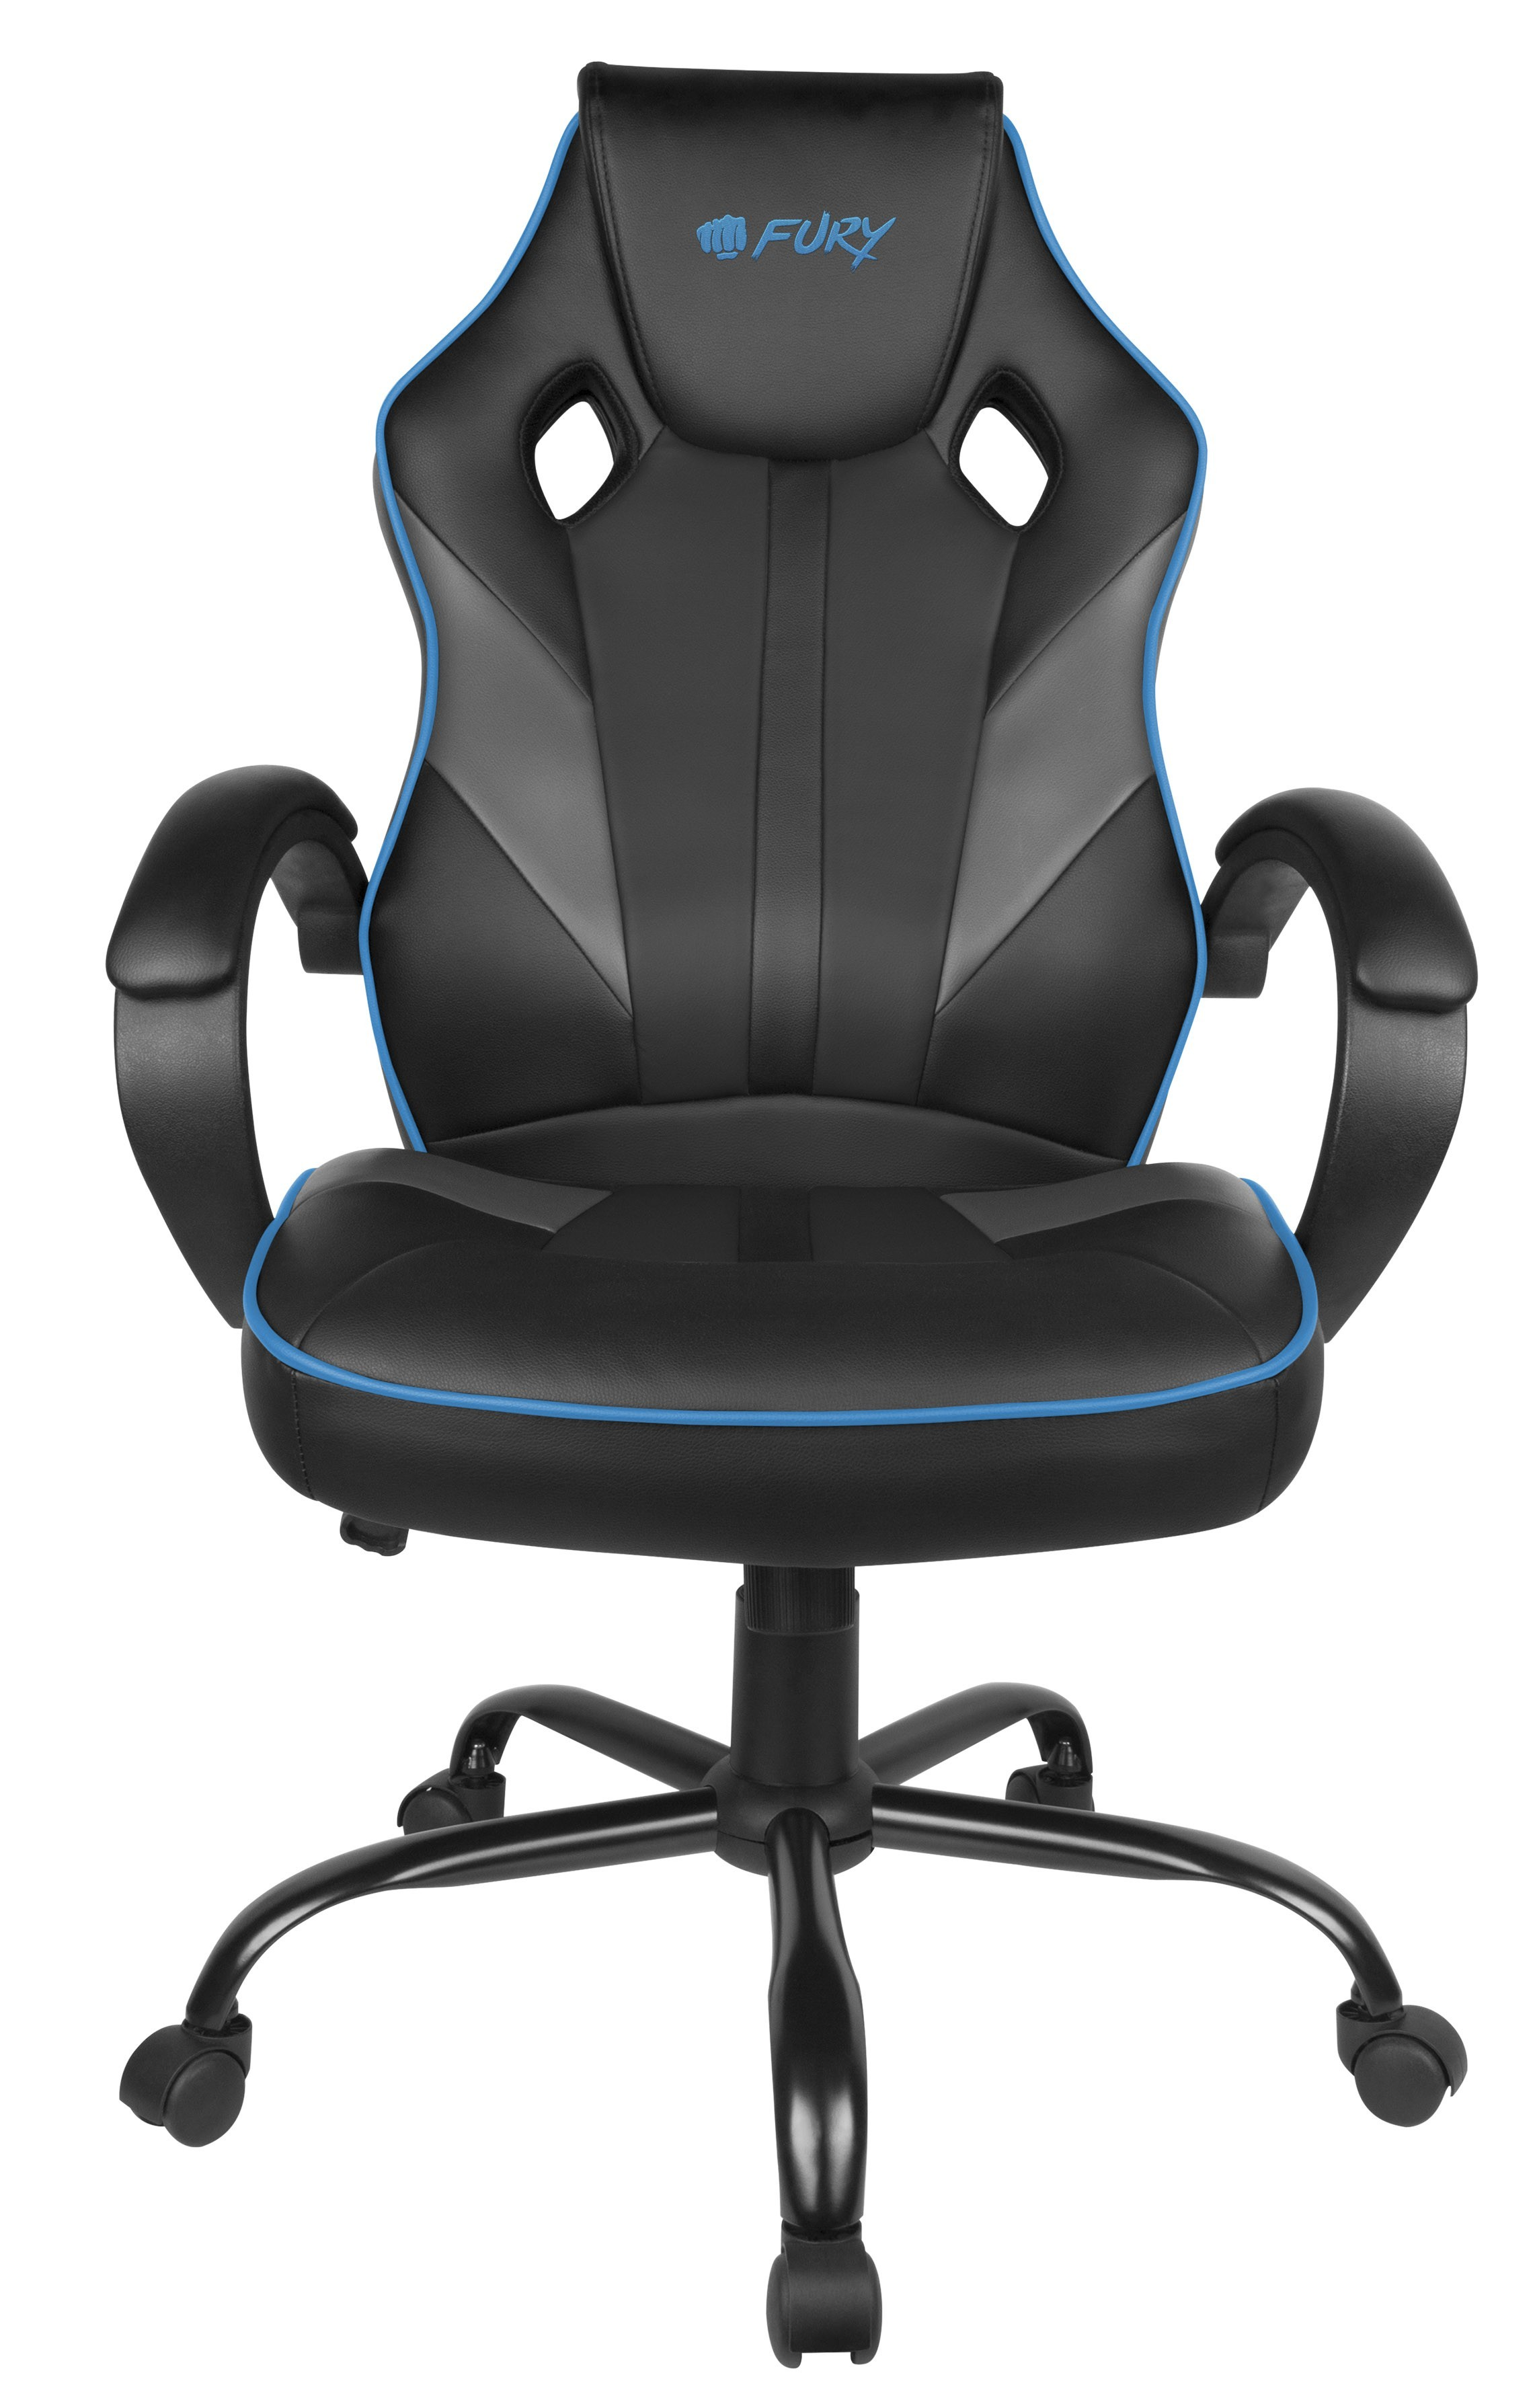 FURY AVENGER M black/grey gaming chair